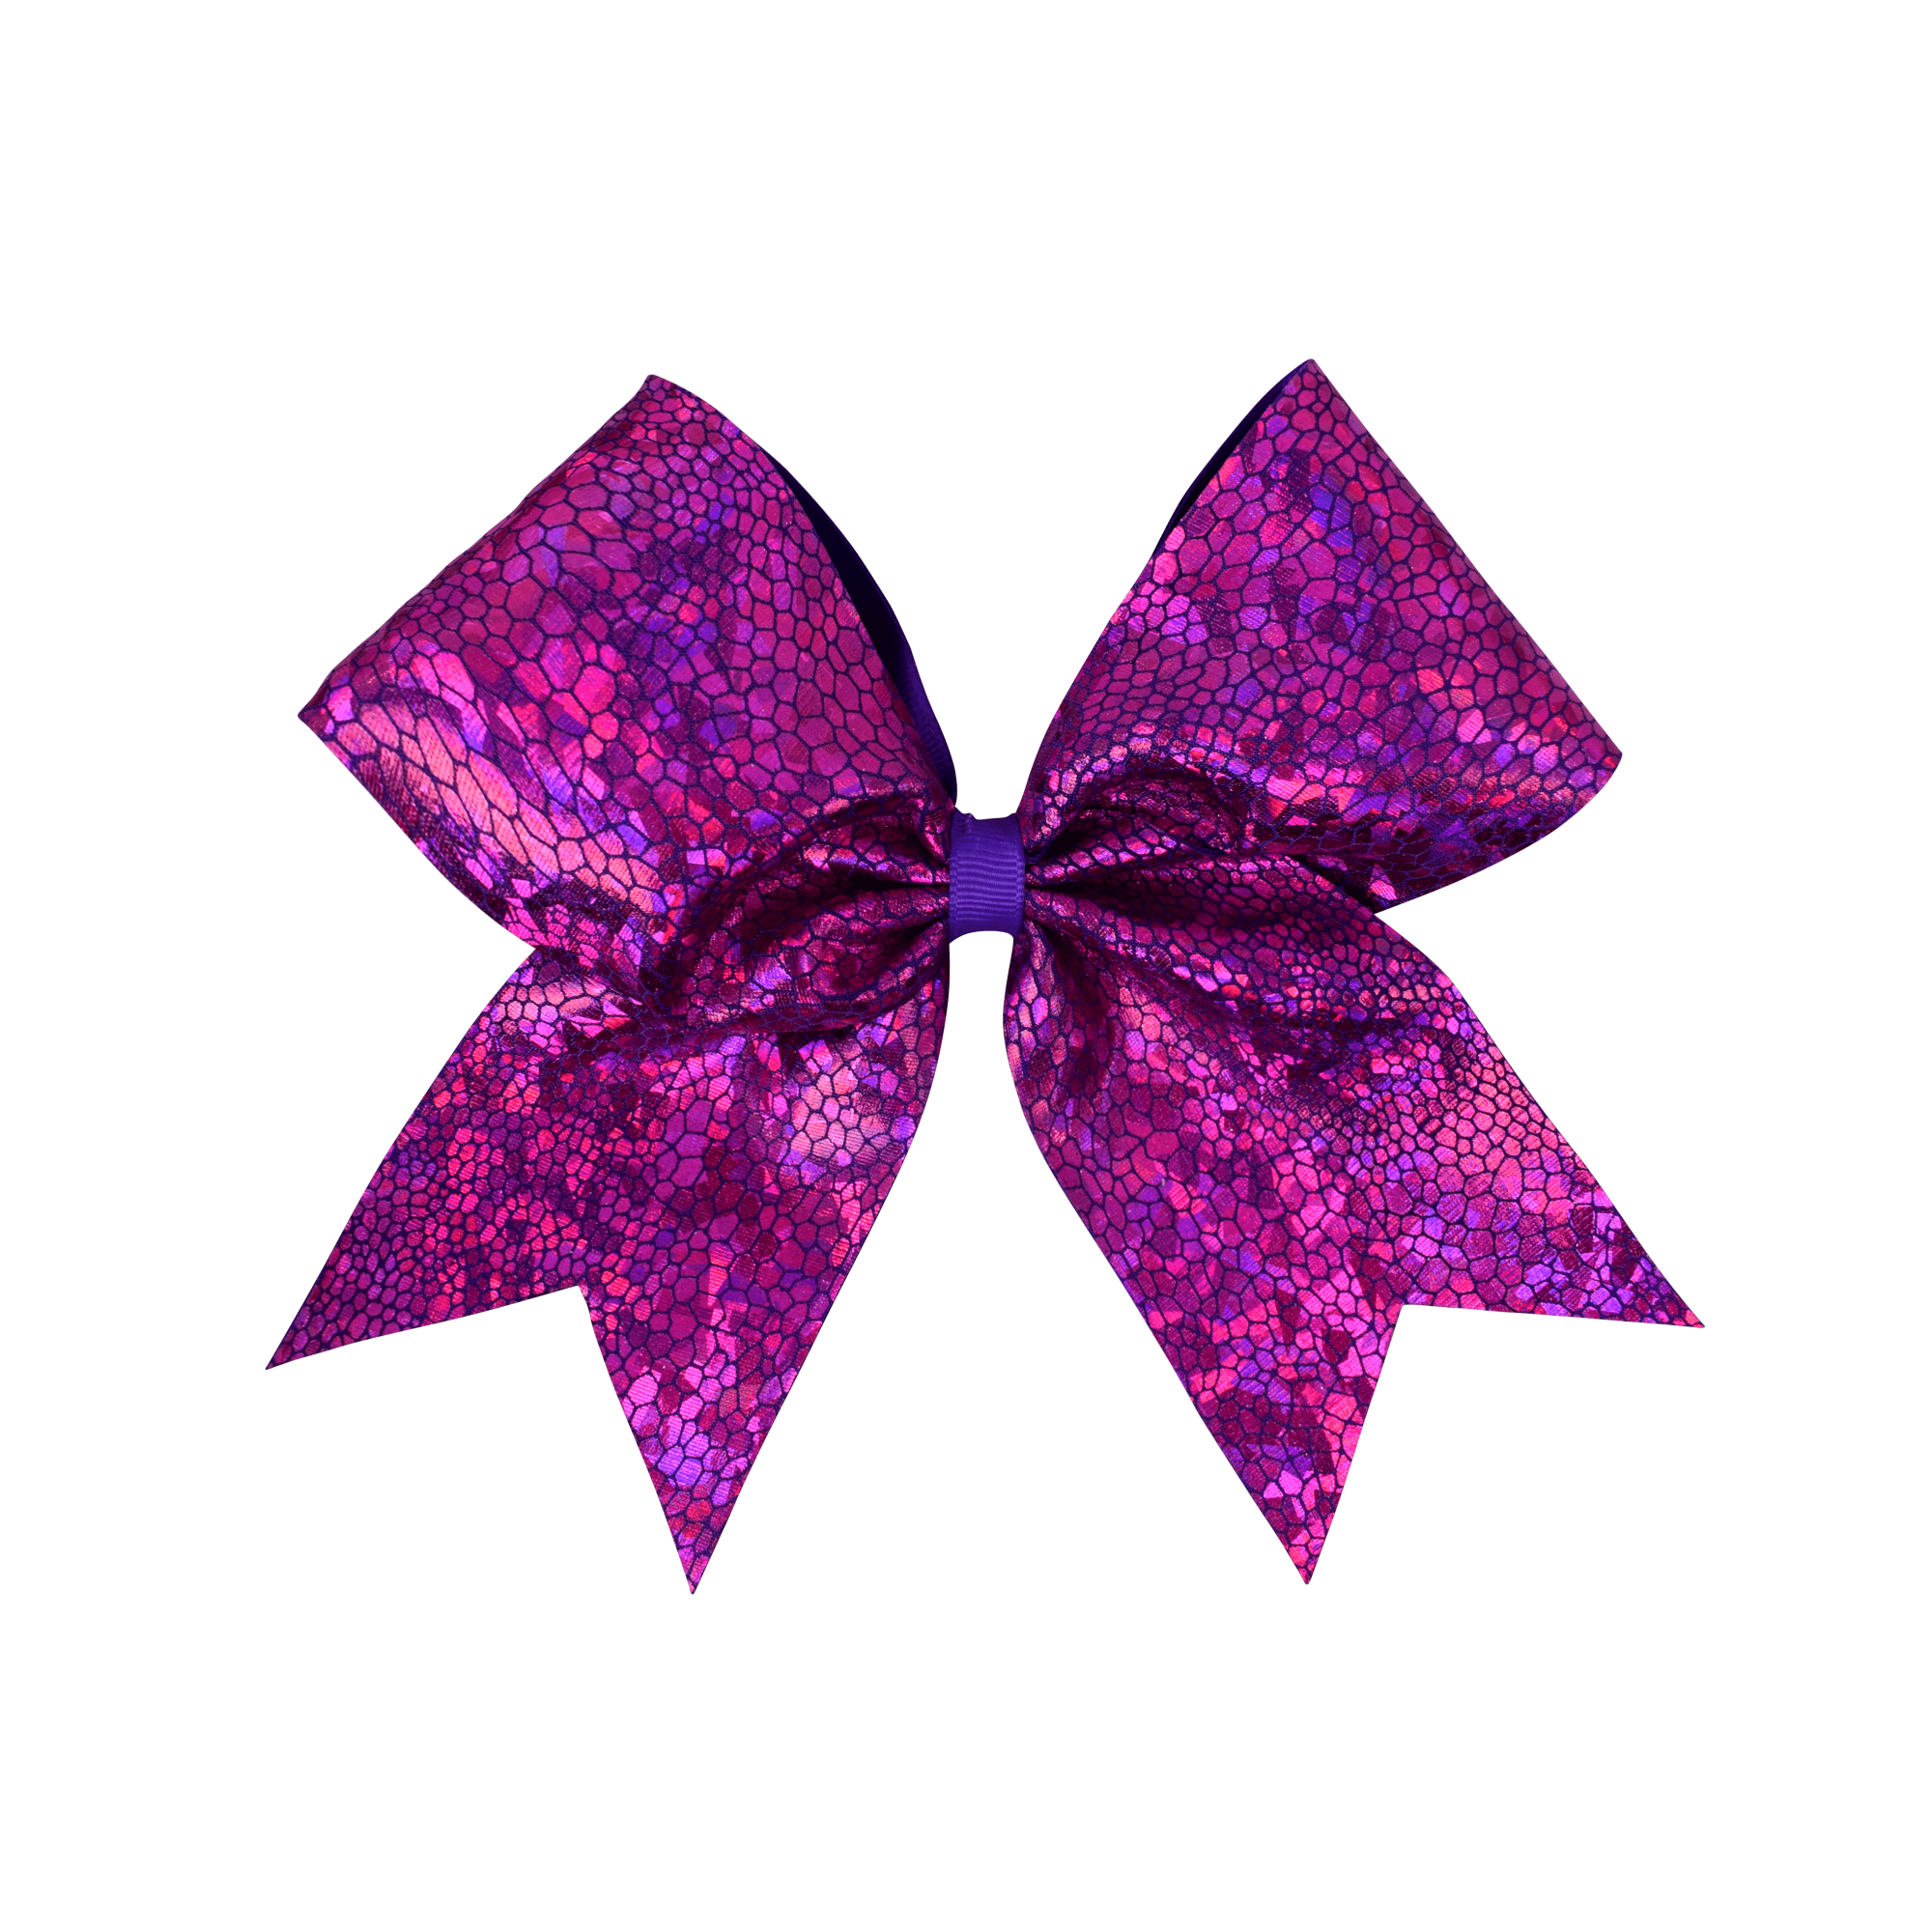 Png hair bow. Purple cracked ice i